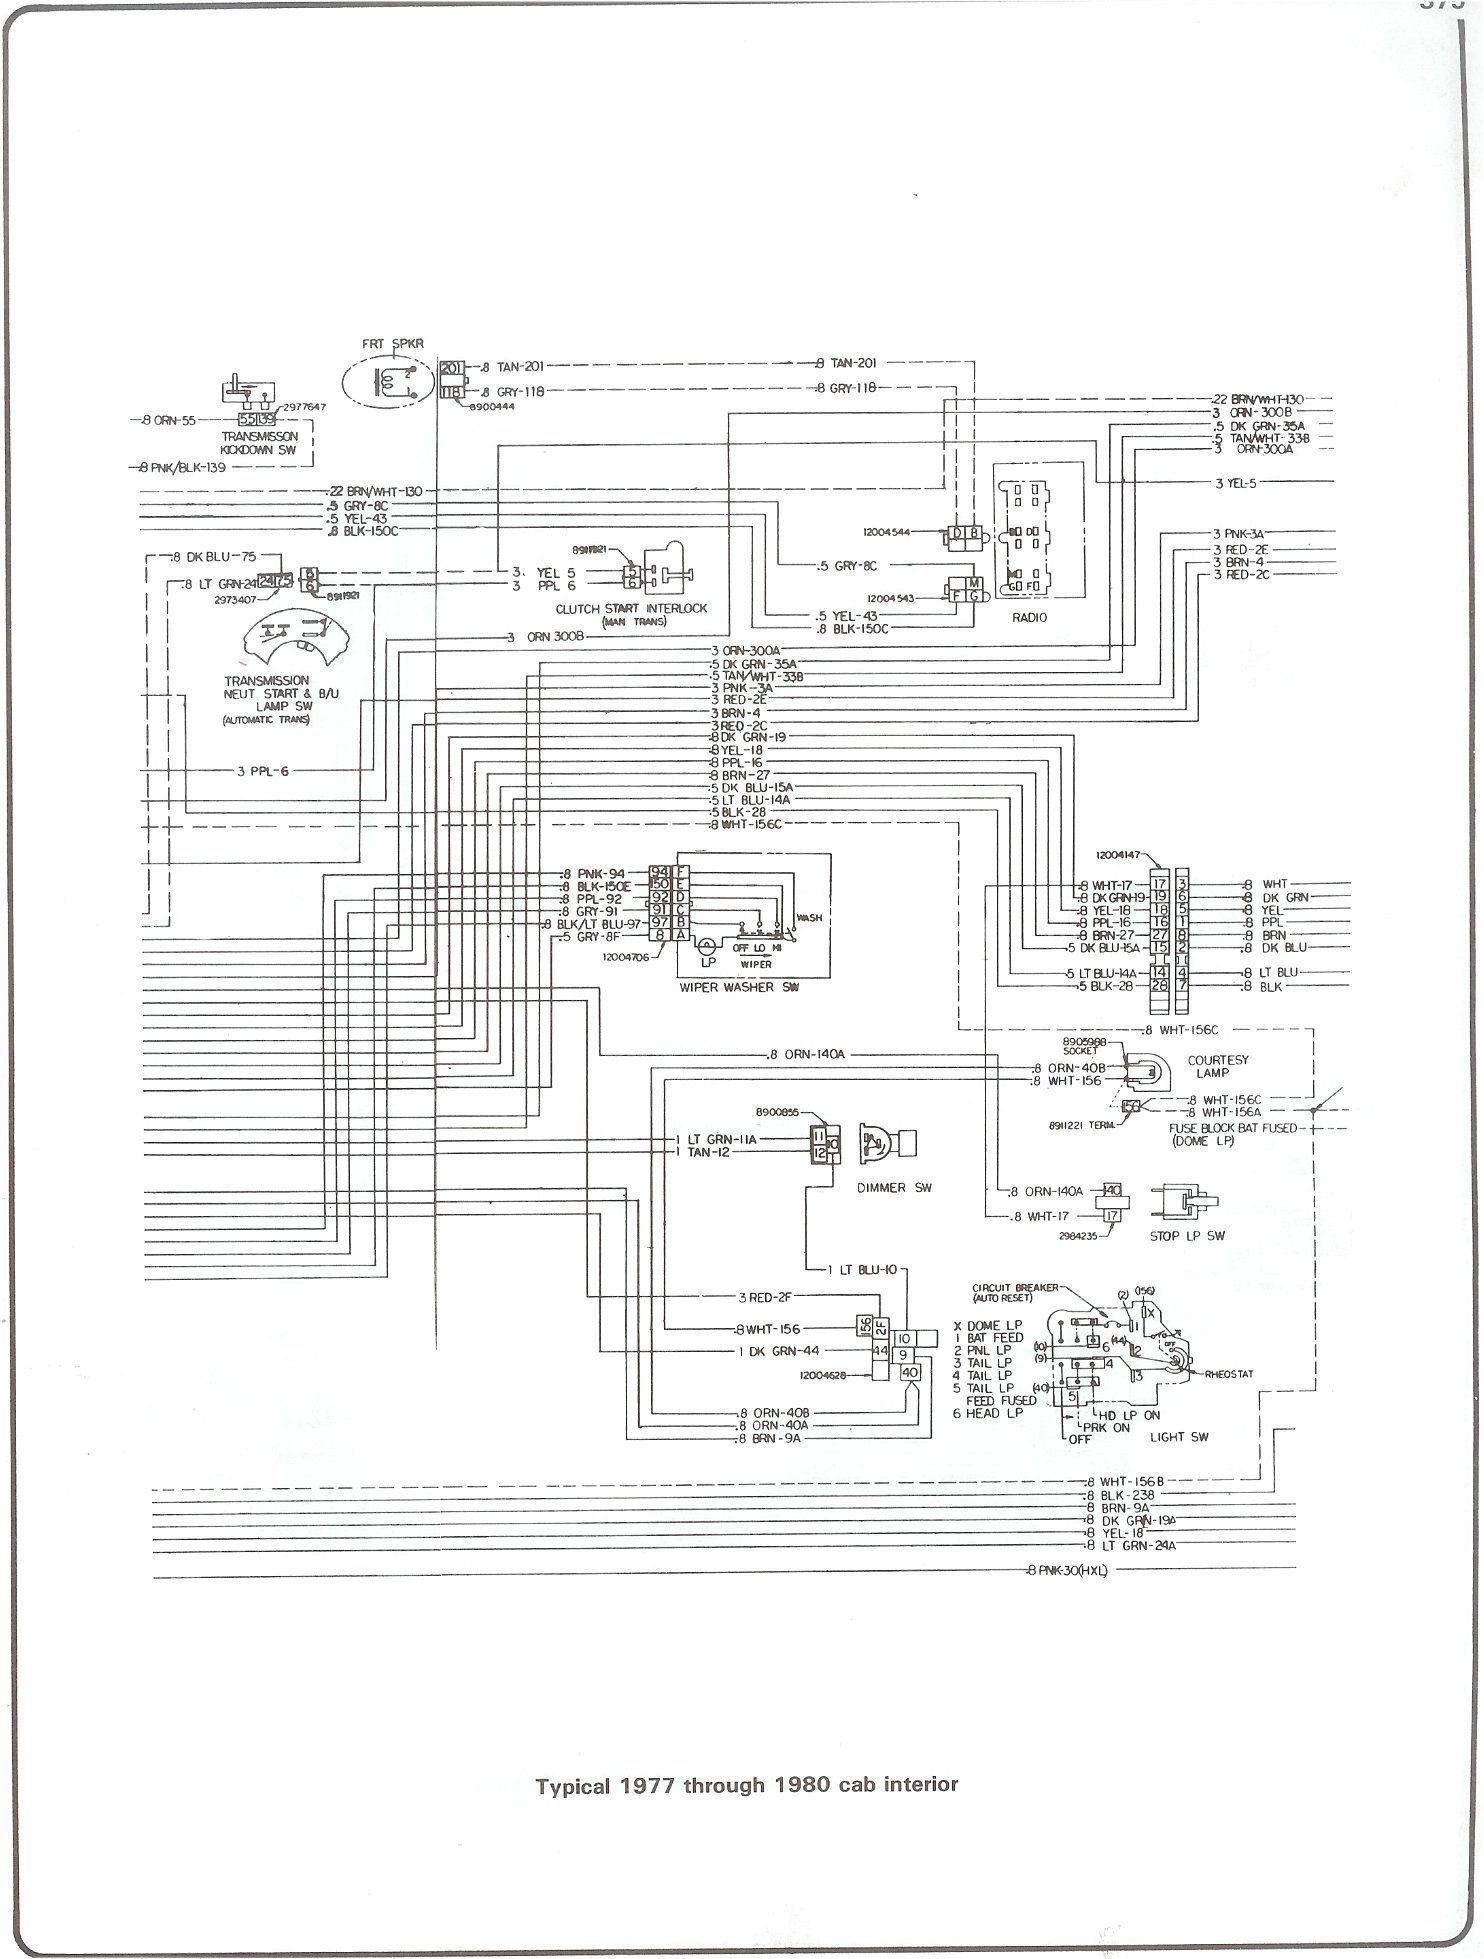 78 Chevy Truck Wiring Diagram All Toyota Alternator Harness Complete 73 87 Diagrams 77